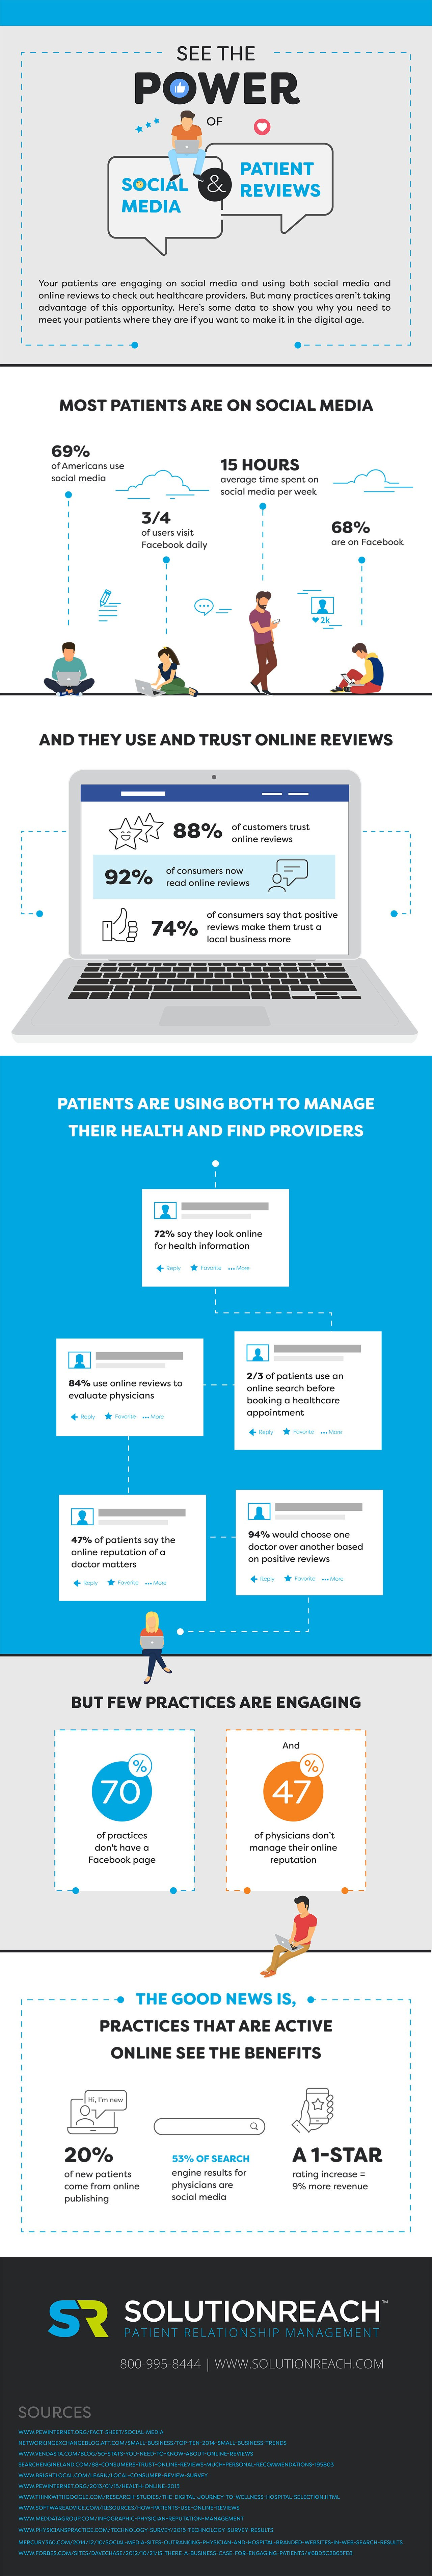 See the Power of Social Media & Patient Reviews